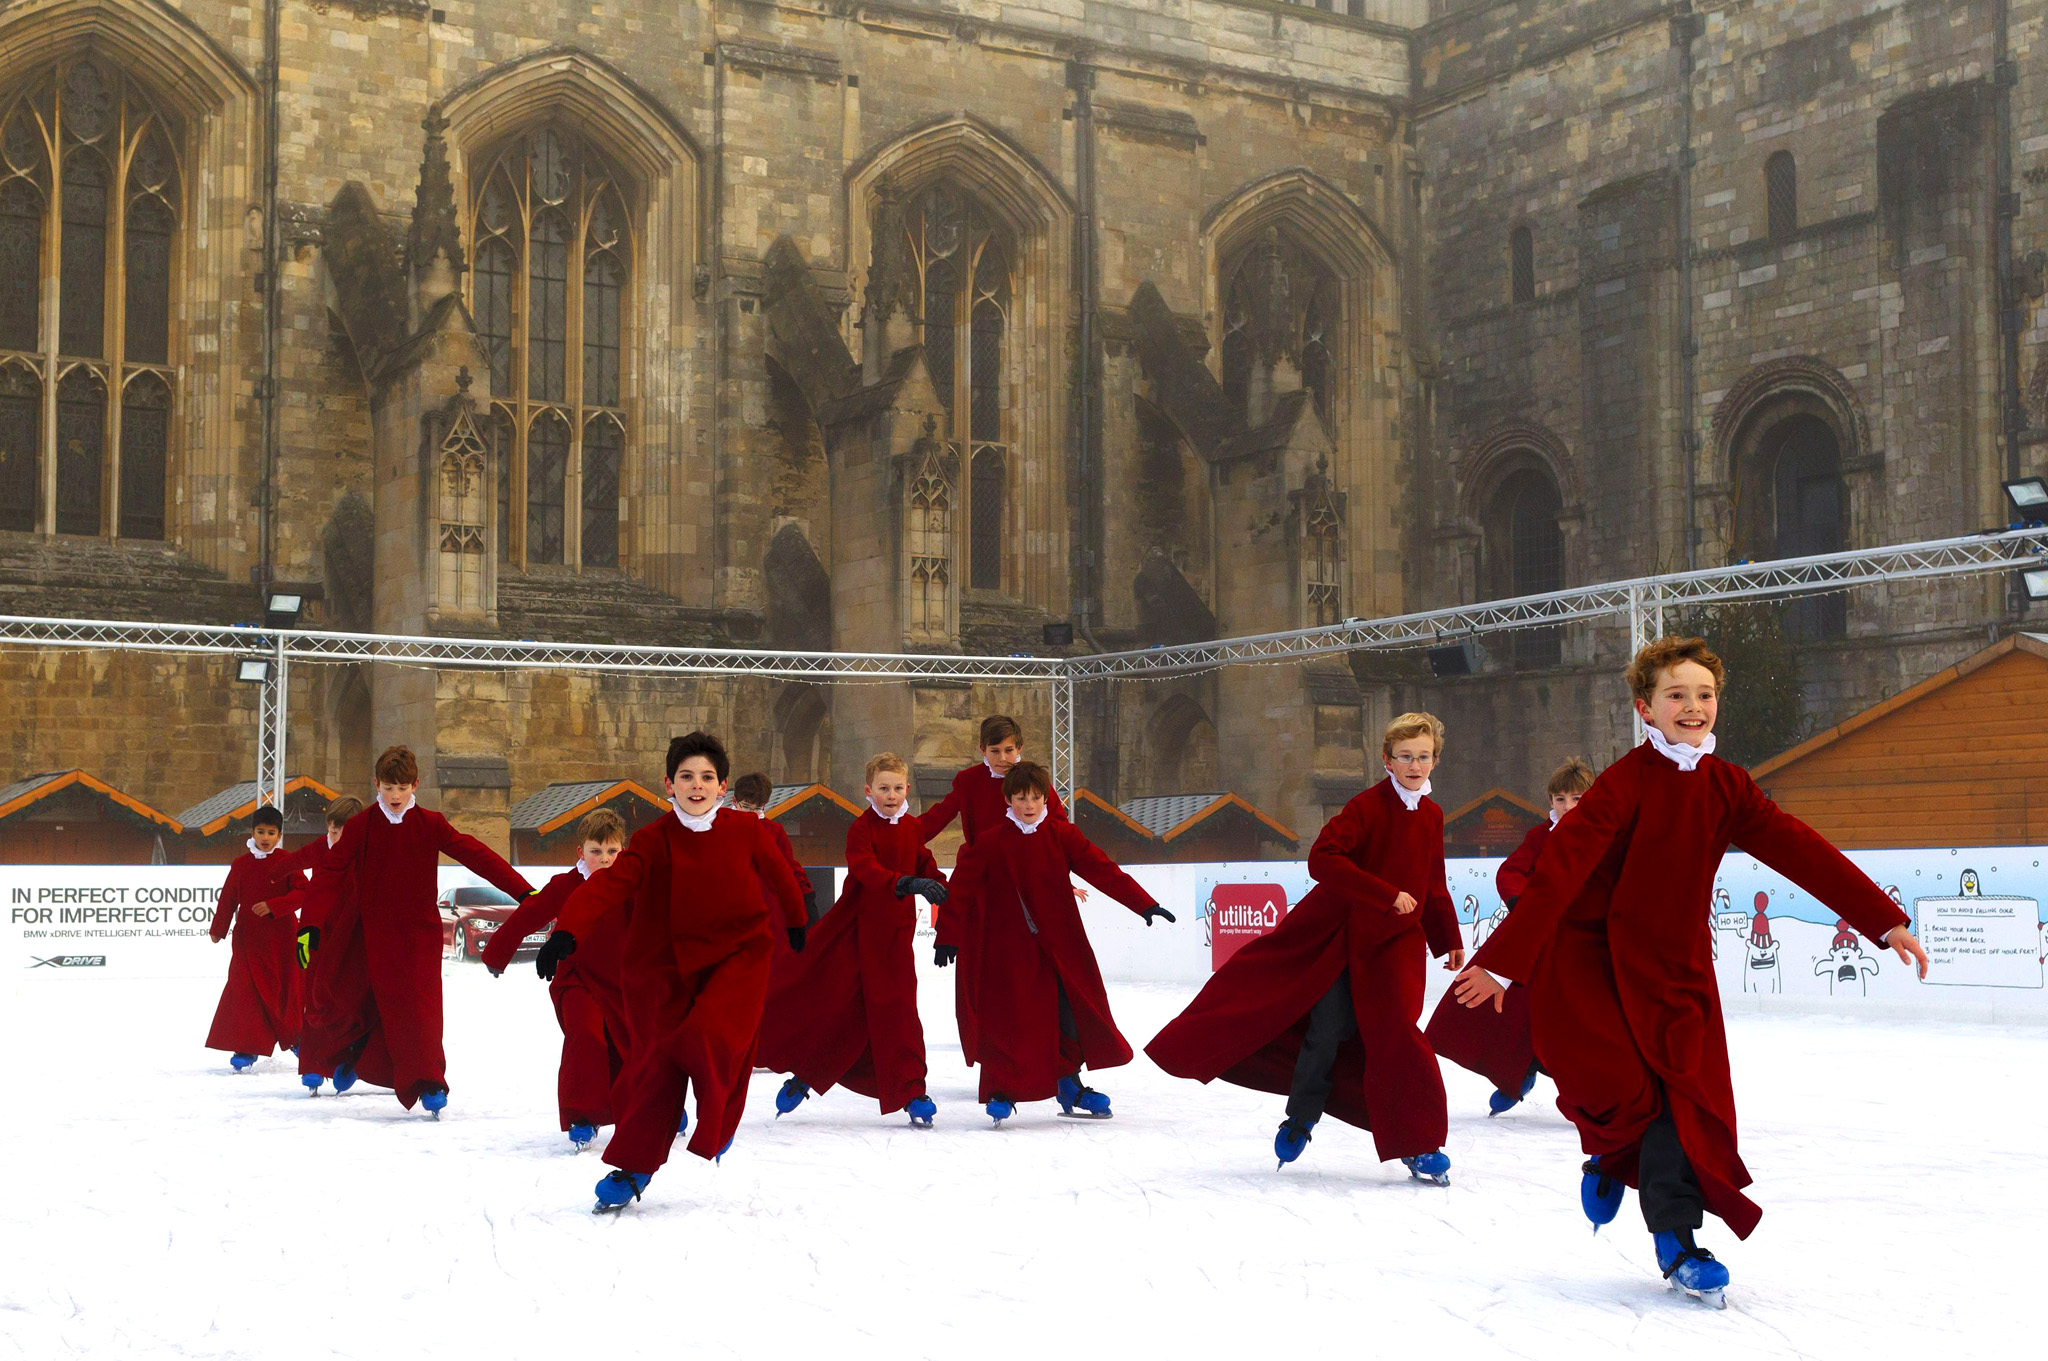 Winchester choristers ice skating